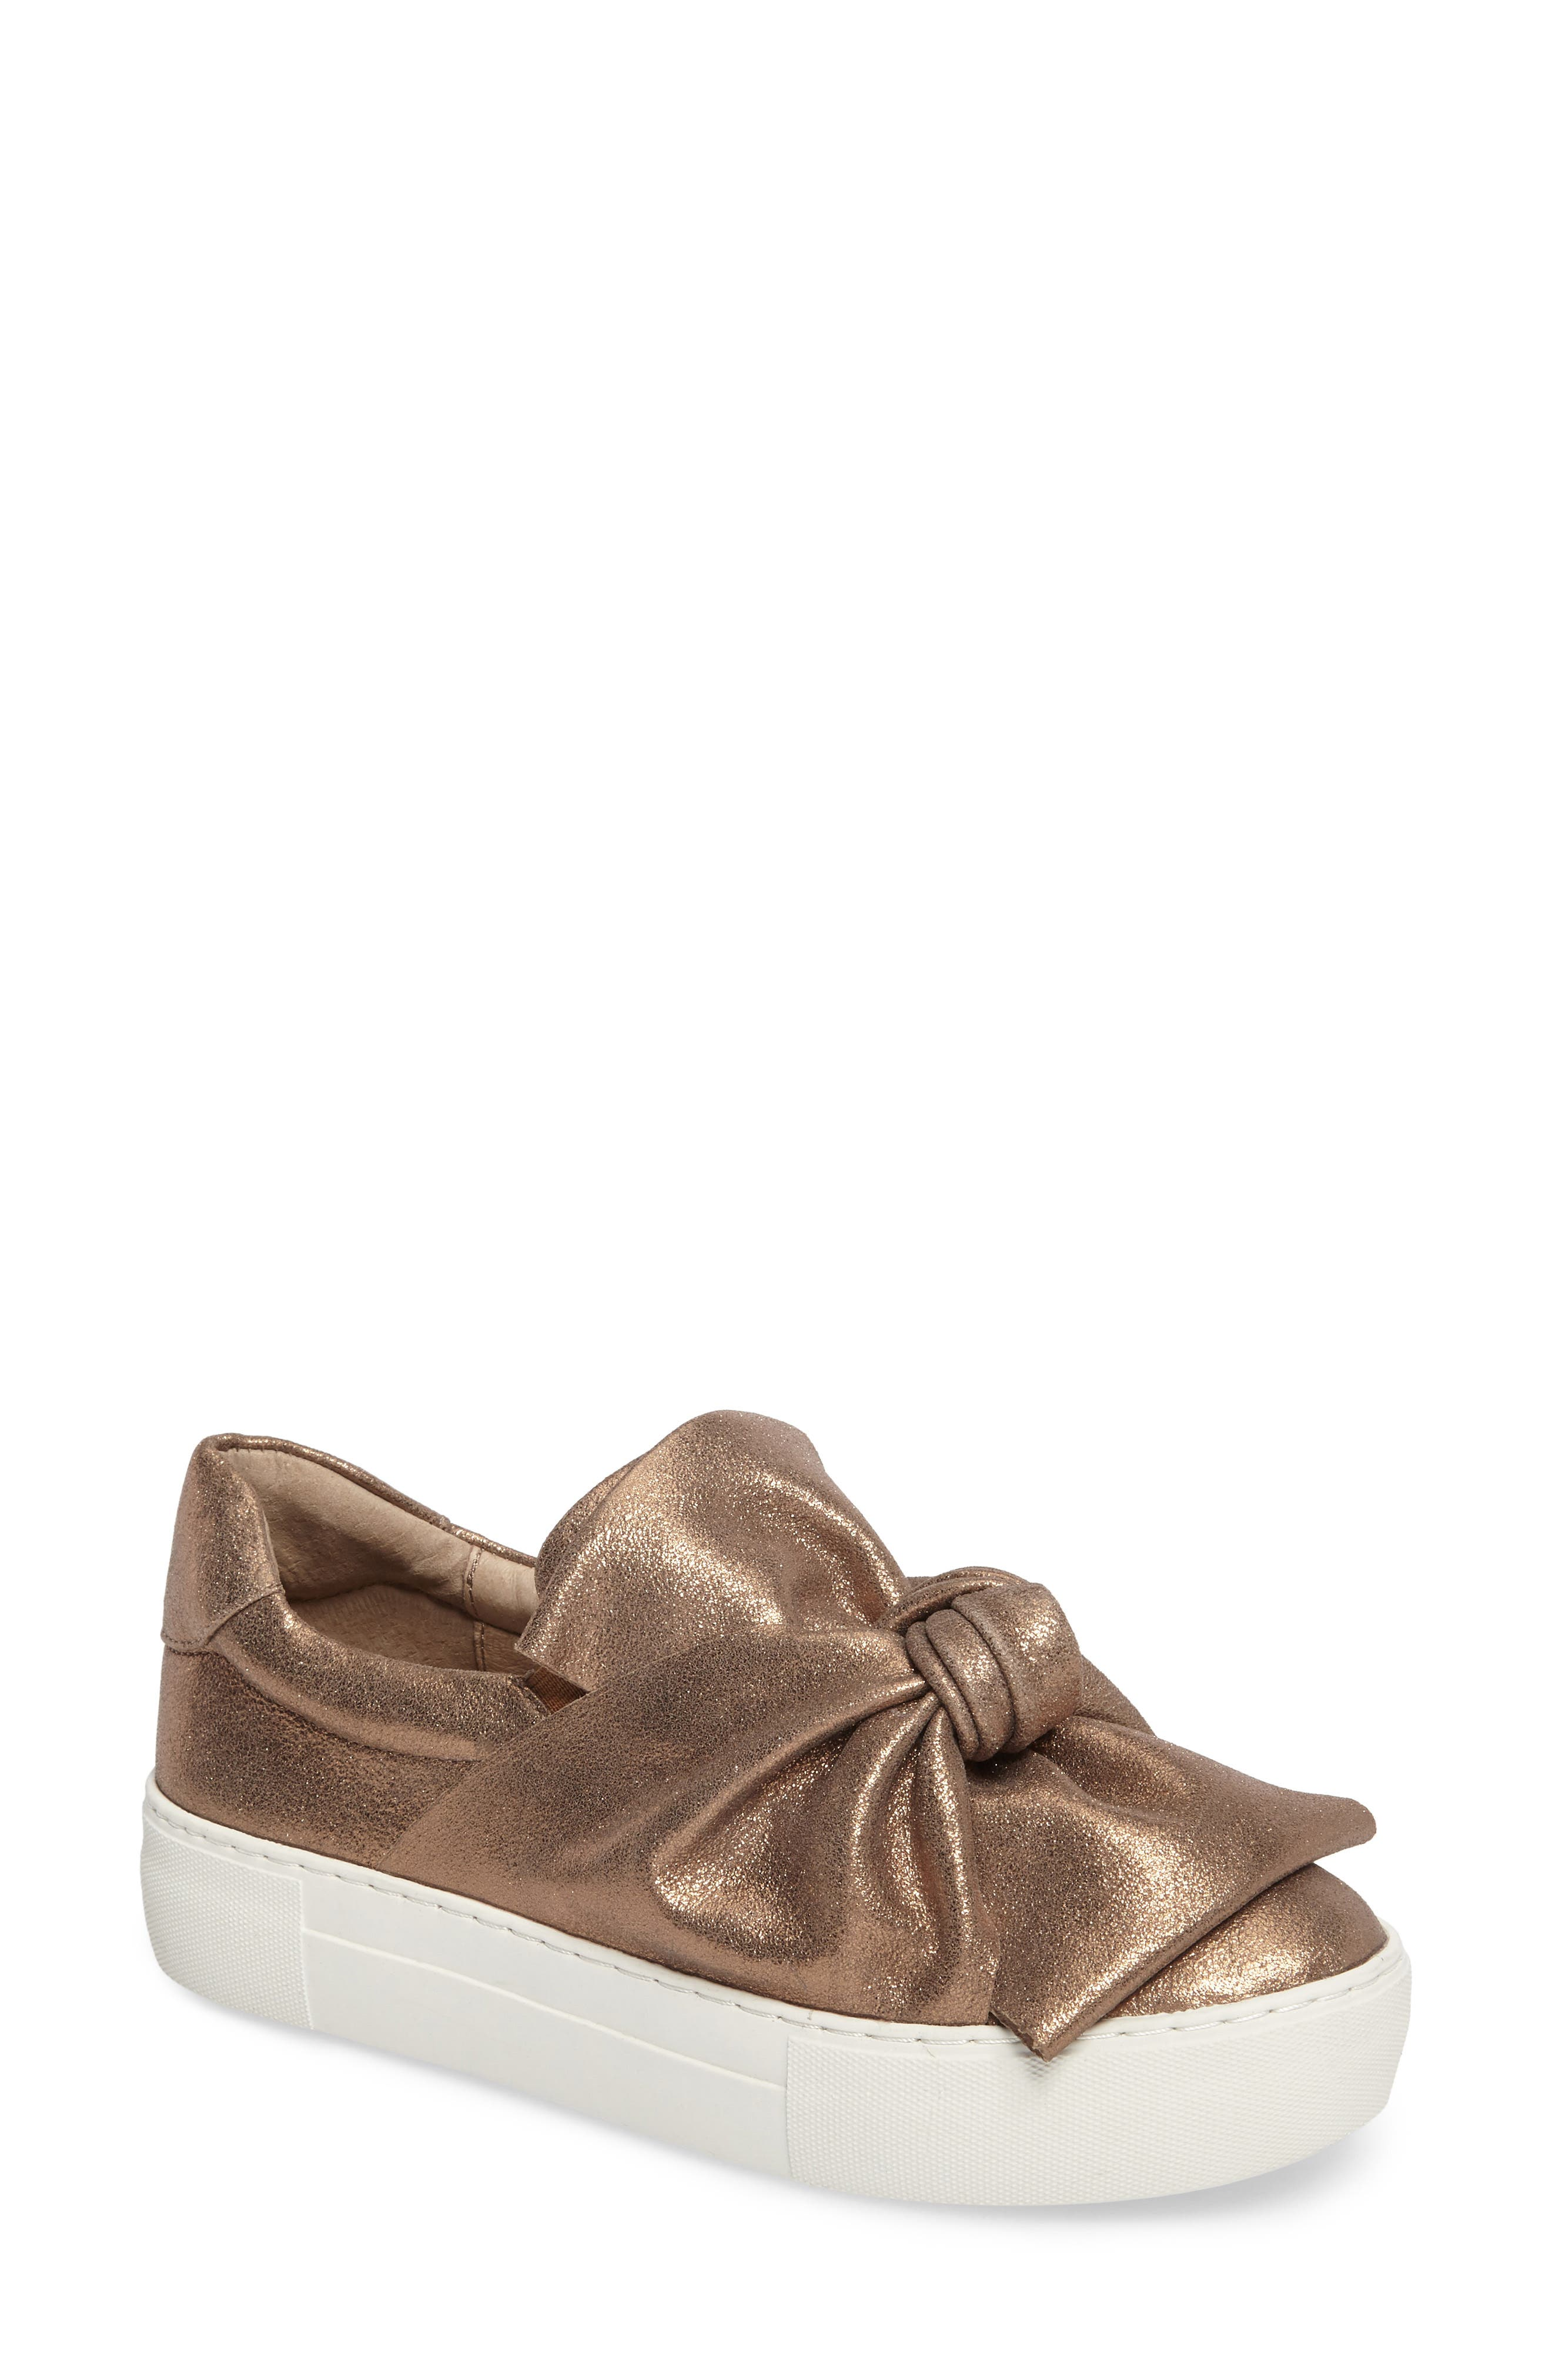 Audra Slip-On Sneaker,                             Main thumbnail 1, color,                             Taupe Leather